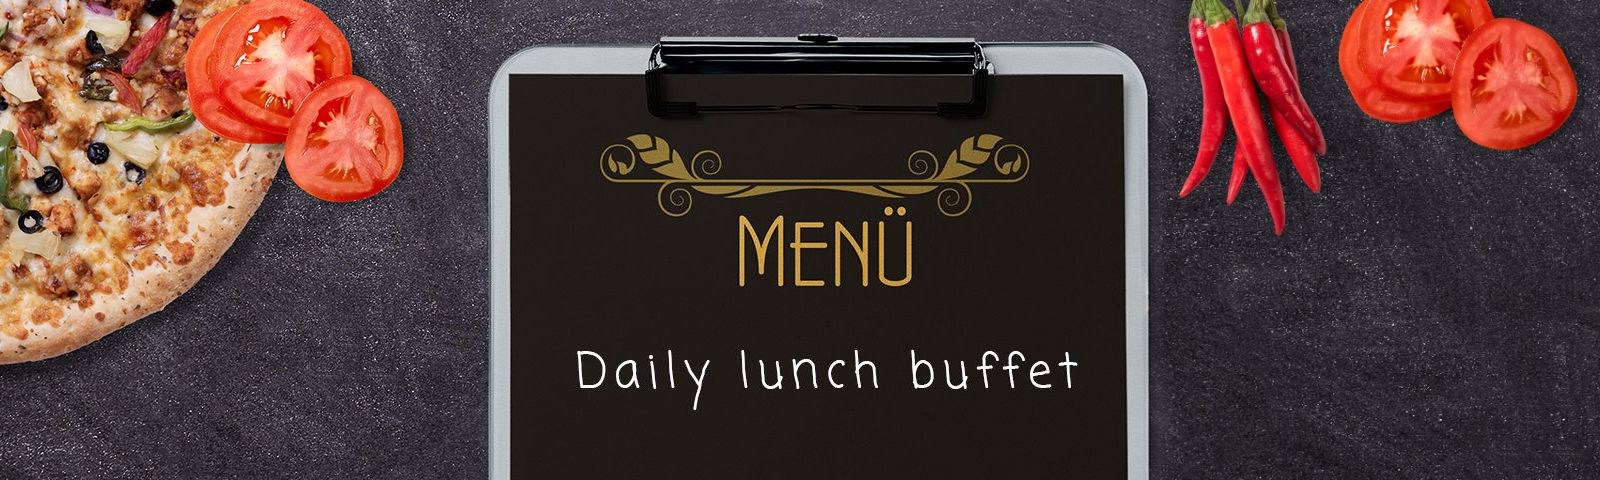 Lunch Menu slide